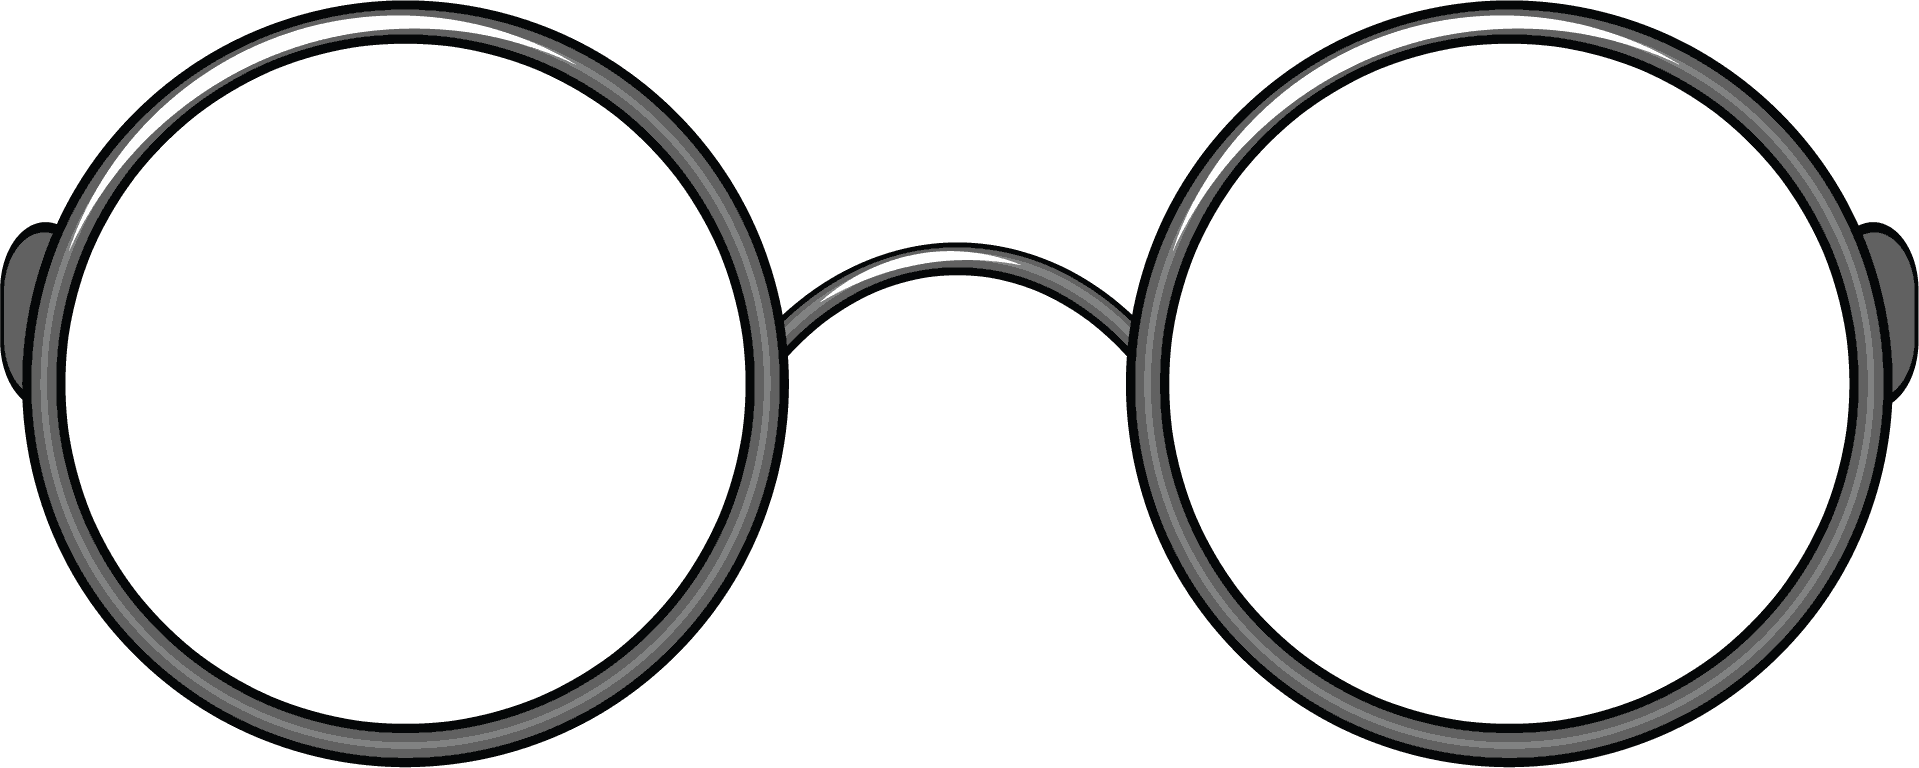 Glasses Image PNG Image